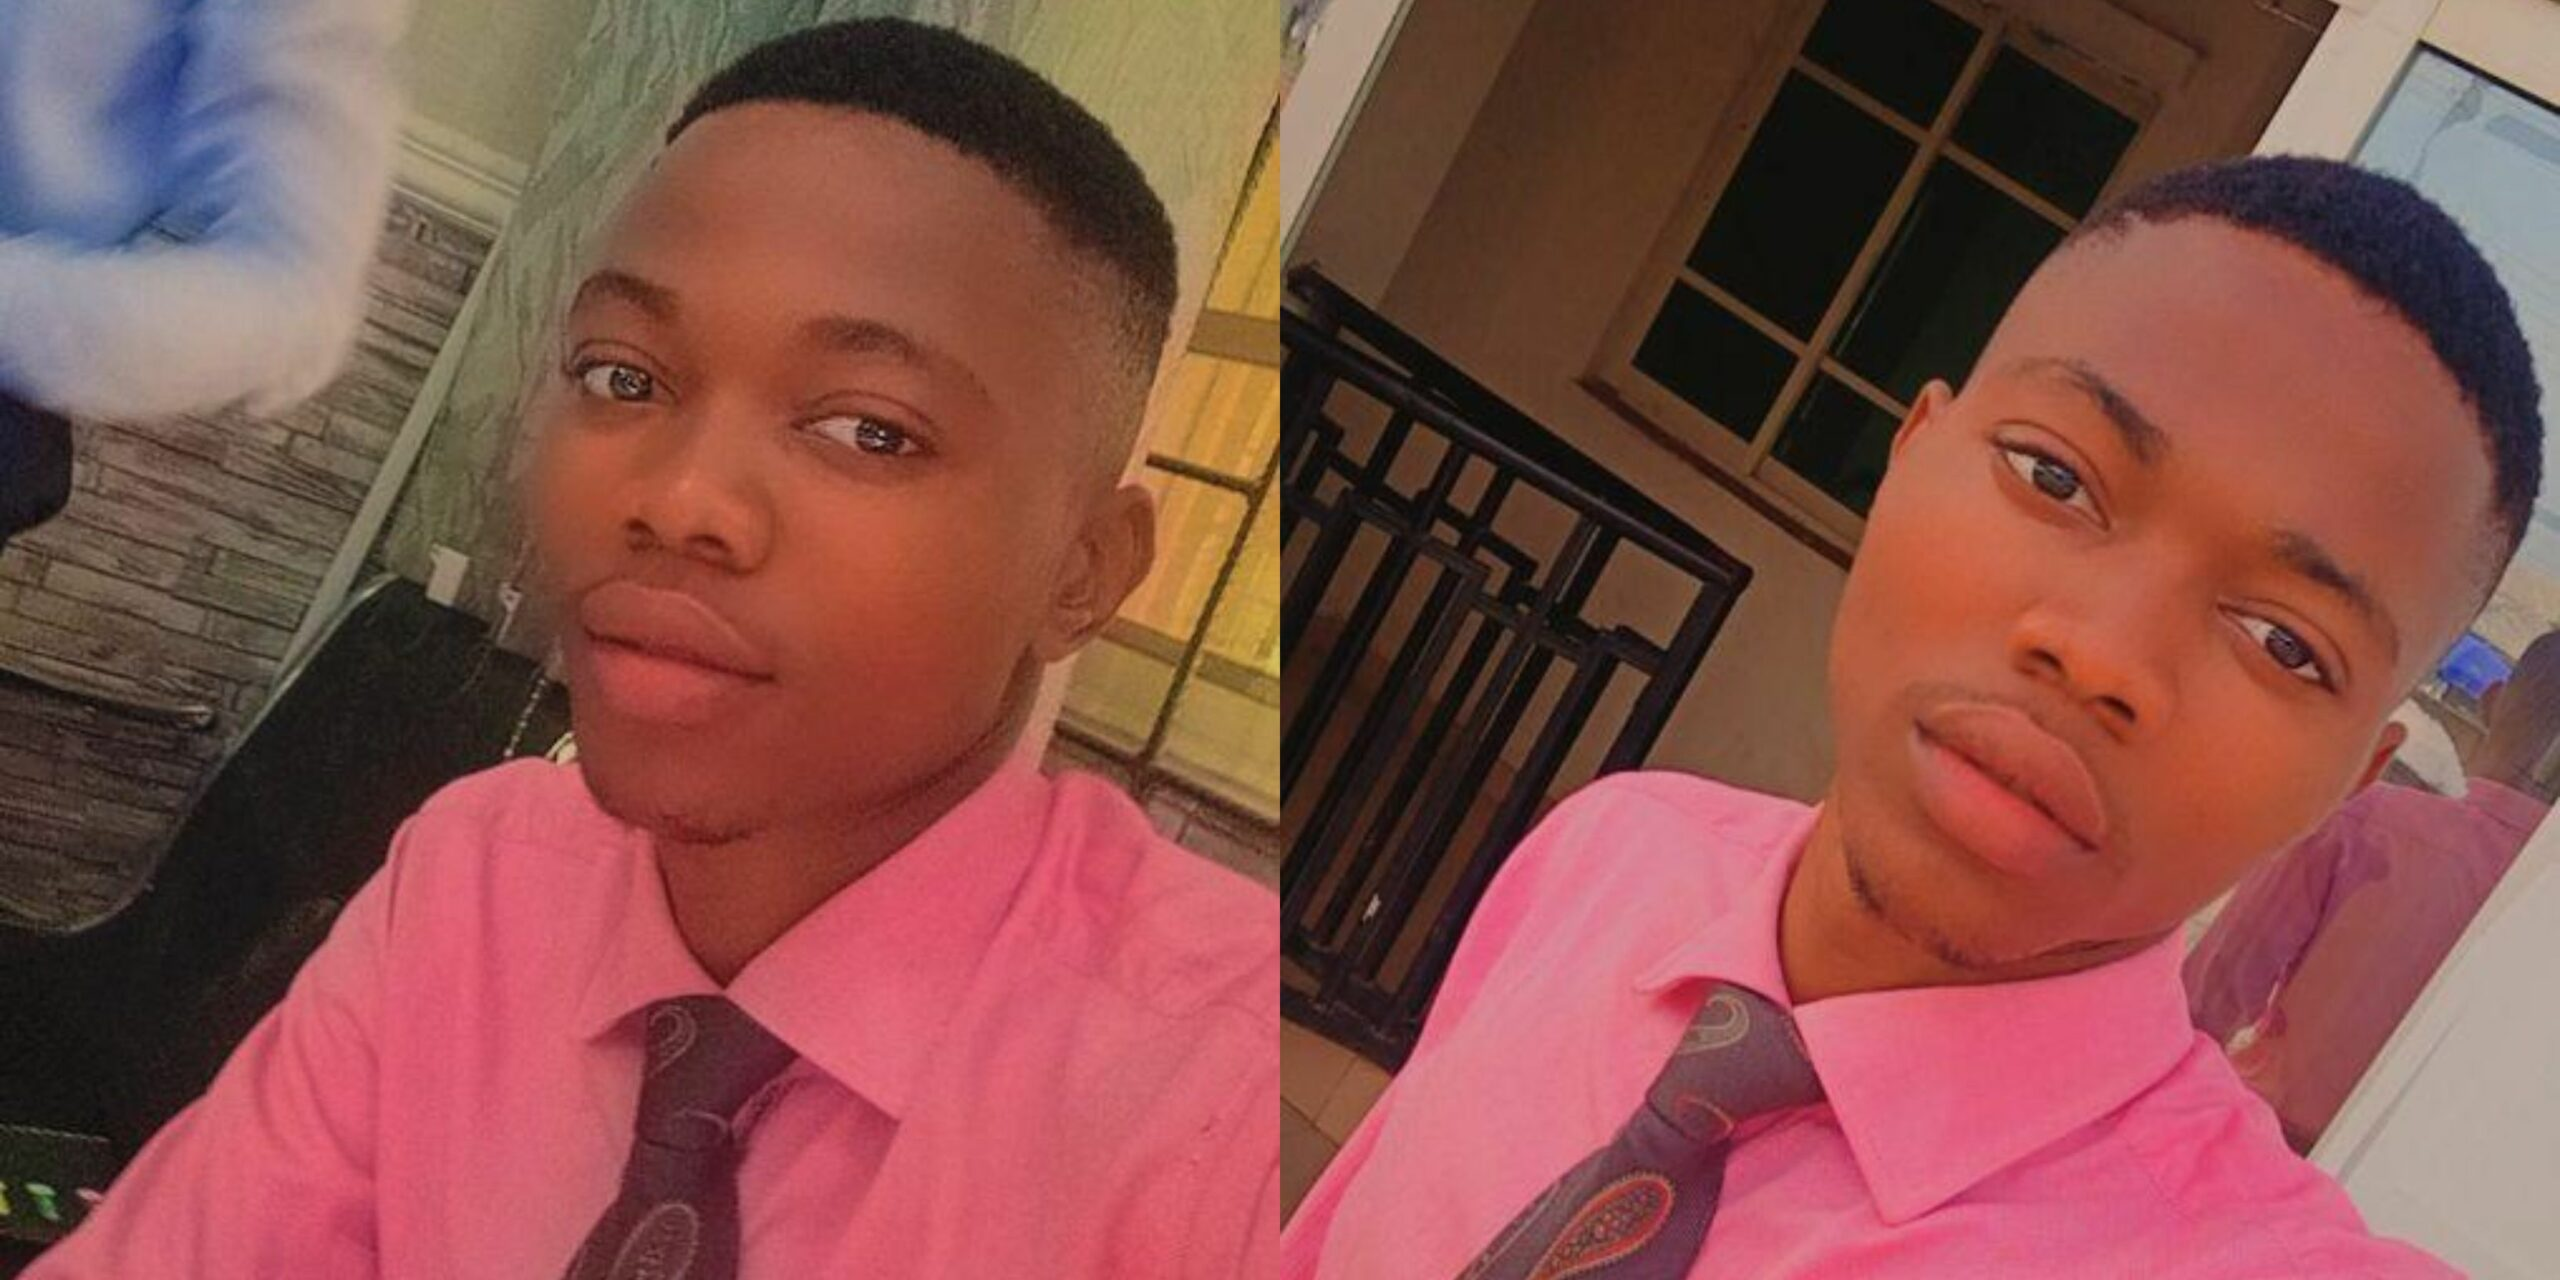 My 2020 plan is to make 20 girls cry, I have only succeeded in making 6 cry - Nigerian man reveals